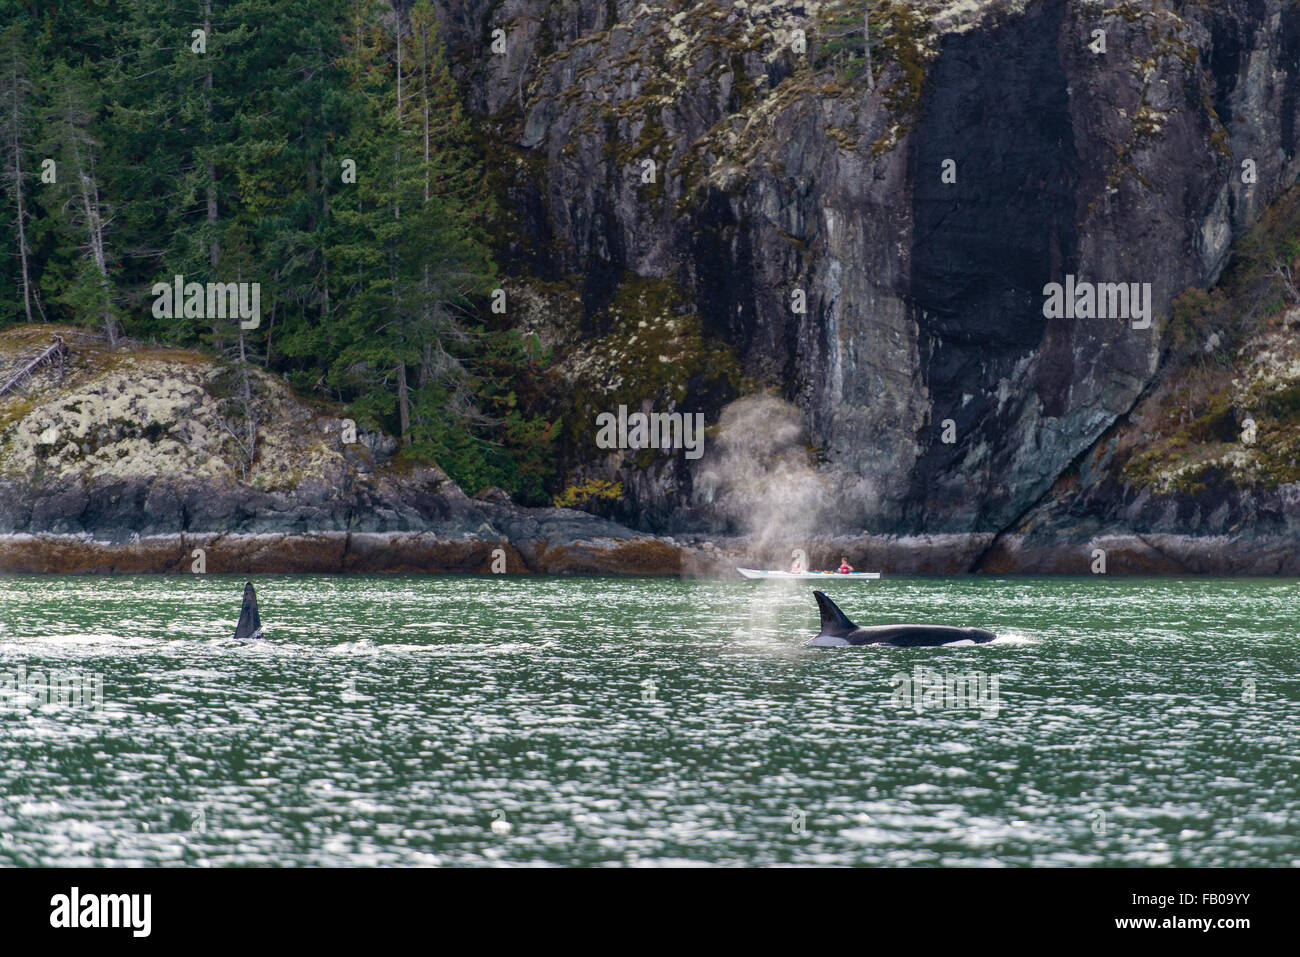 Orcas (Orcinus orca), off the coast, killer whales, Orford River, Vancouver Island, British Columbia, Canada - Stock Image